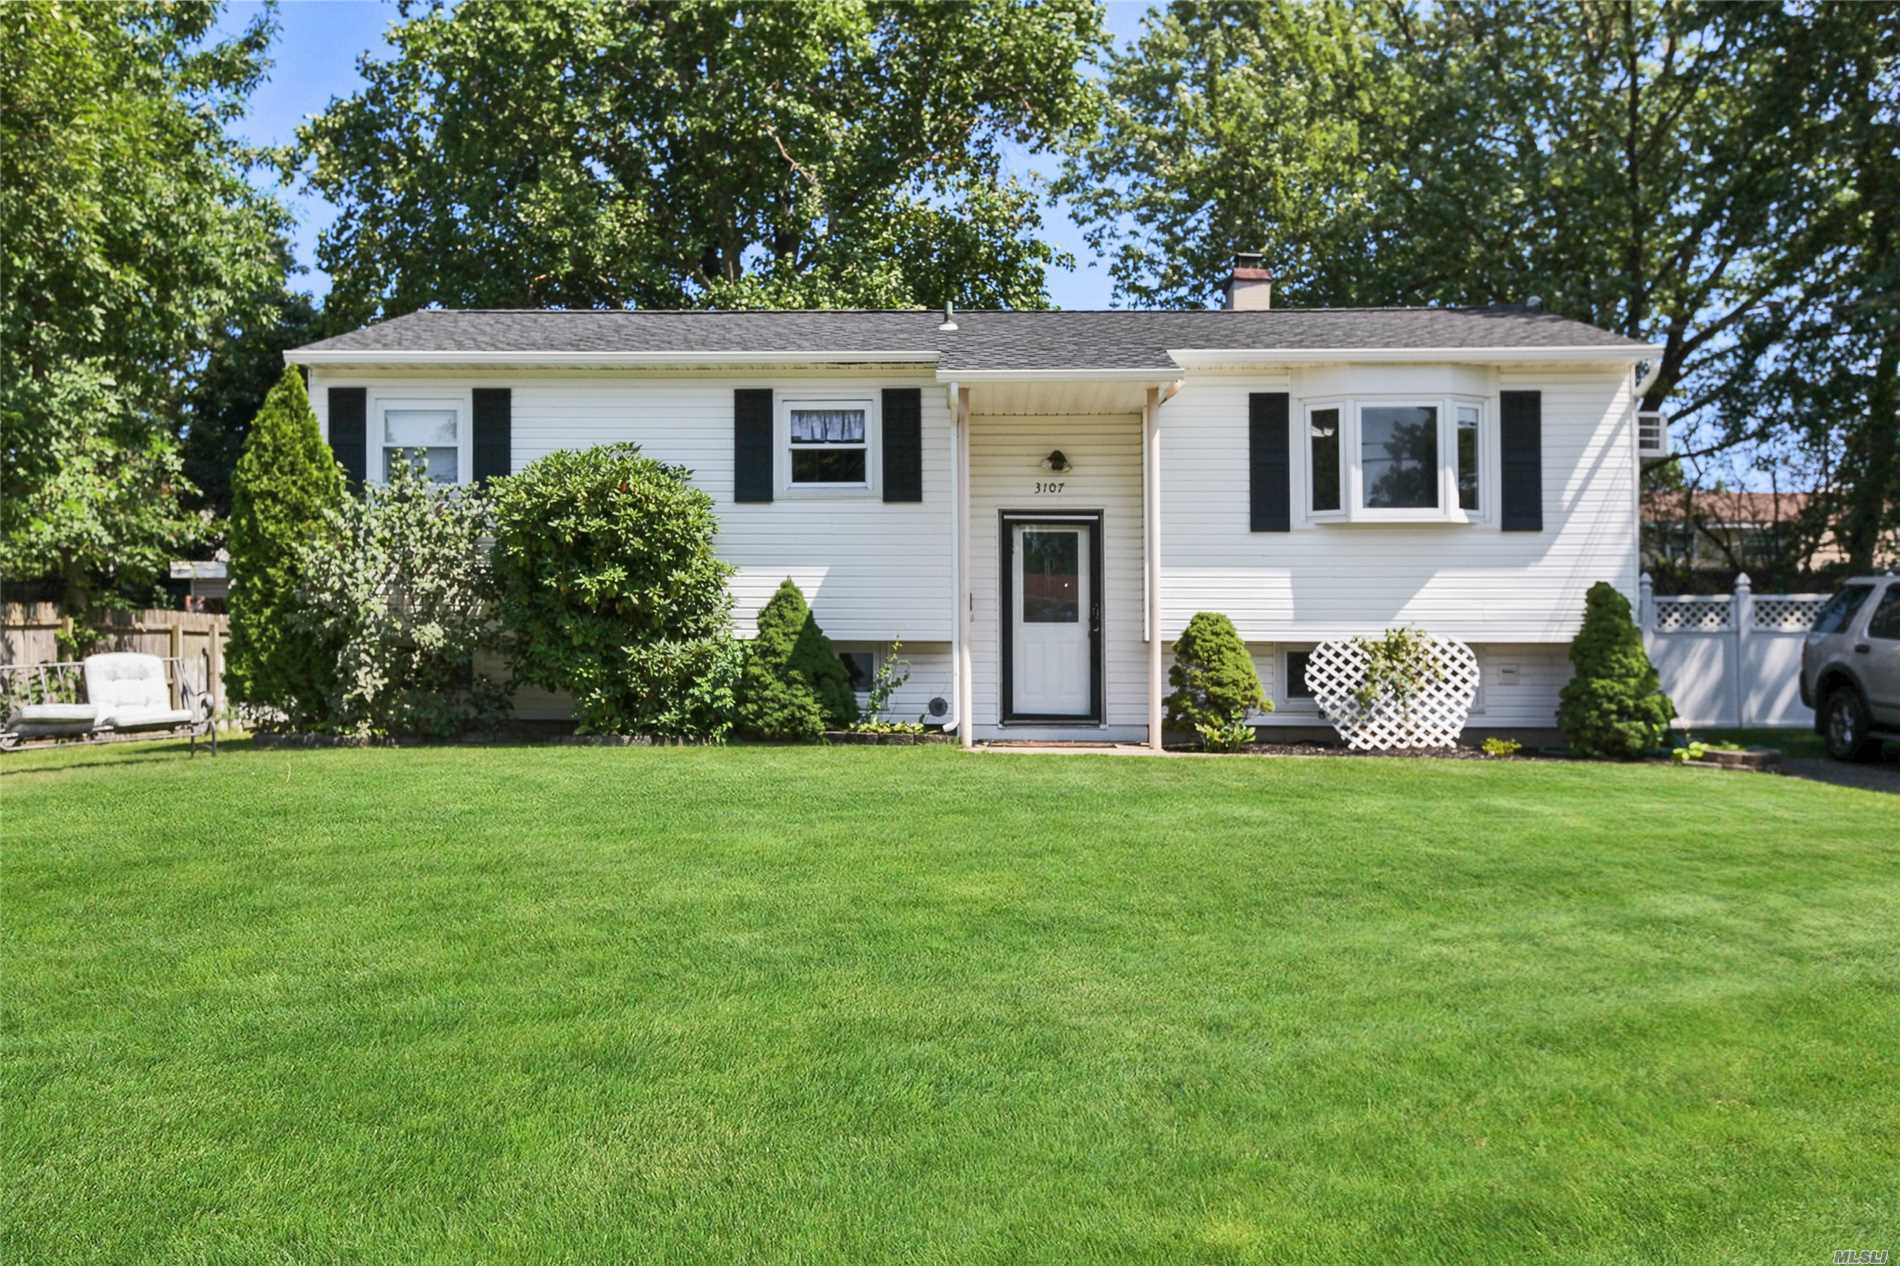 3107 Watchill Ave - Medford, New York